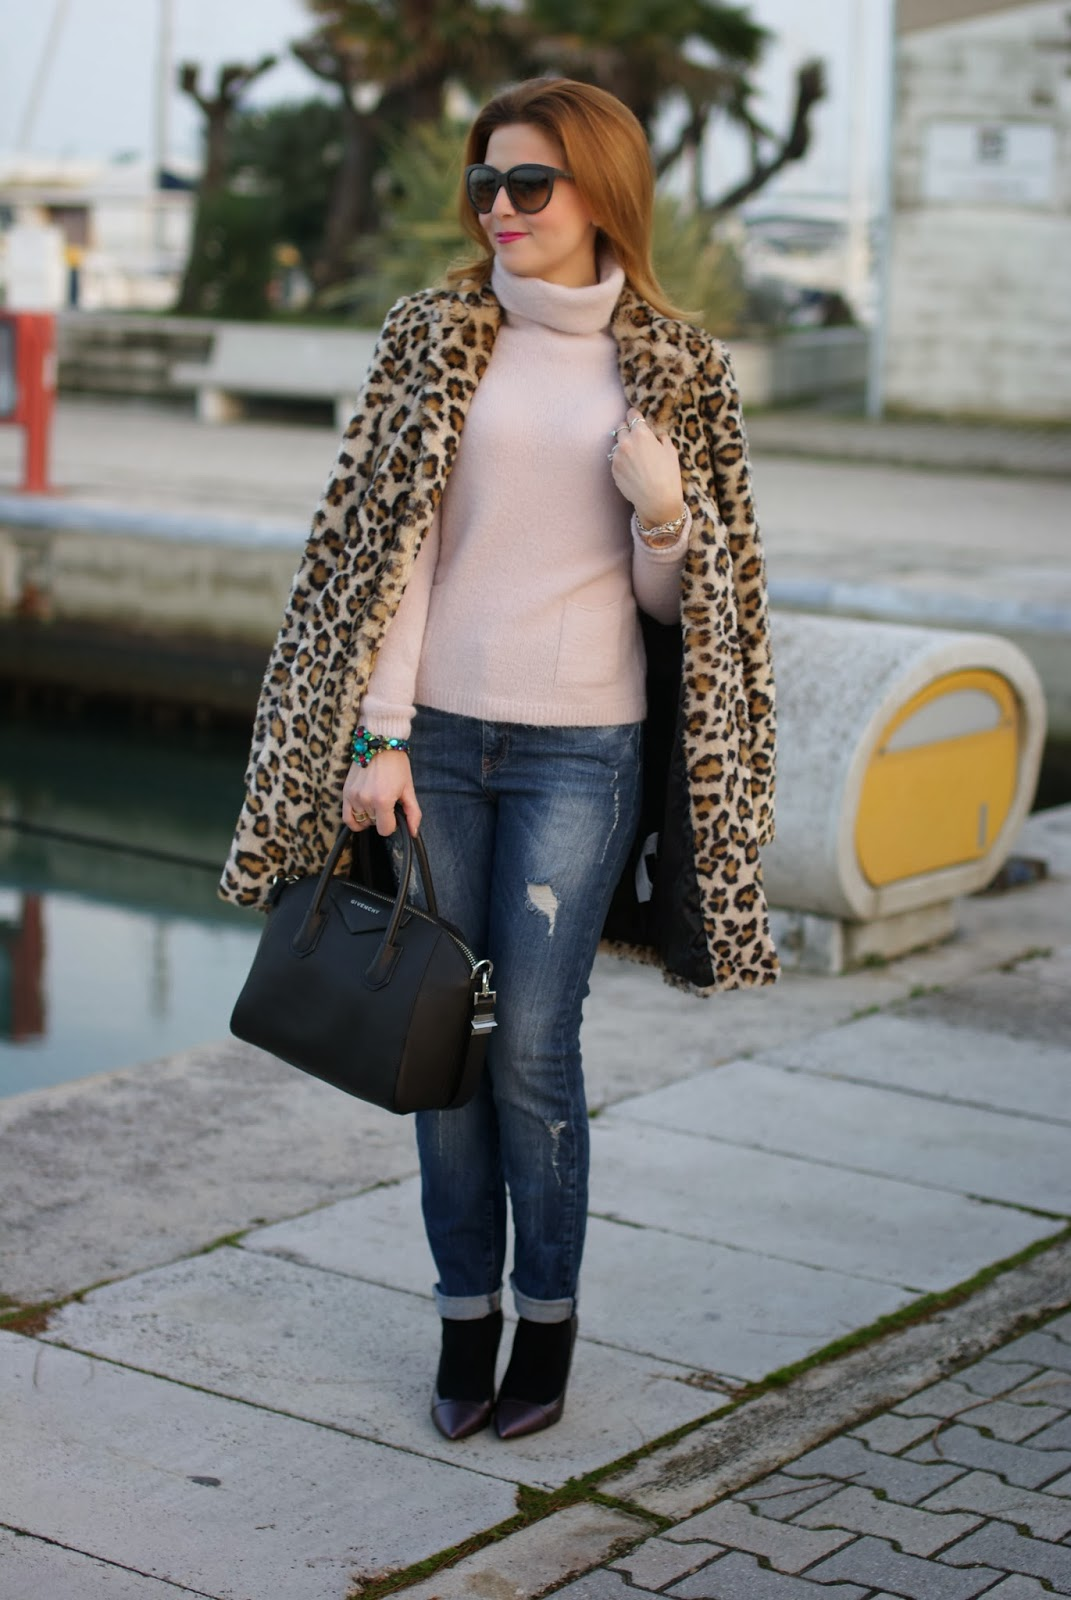 zara leopard coat, leopard faux fur coat, pink sweater, fabi heels, givenchy antigona bag, fashion and cookies, fashion blogger